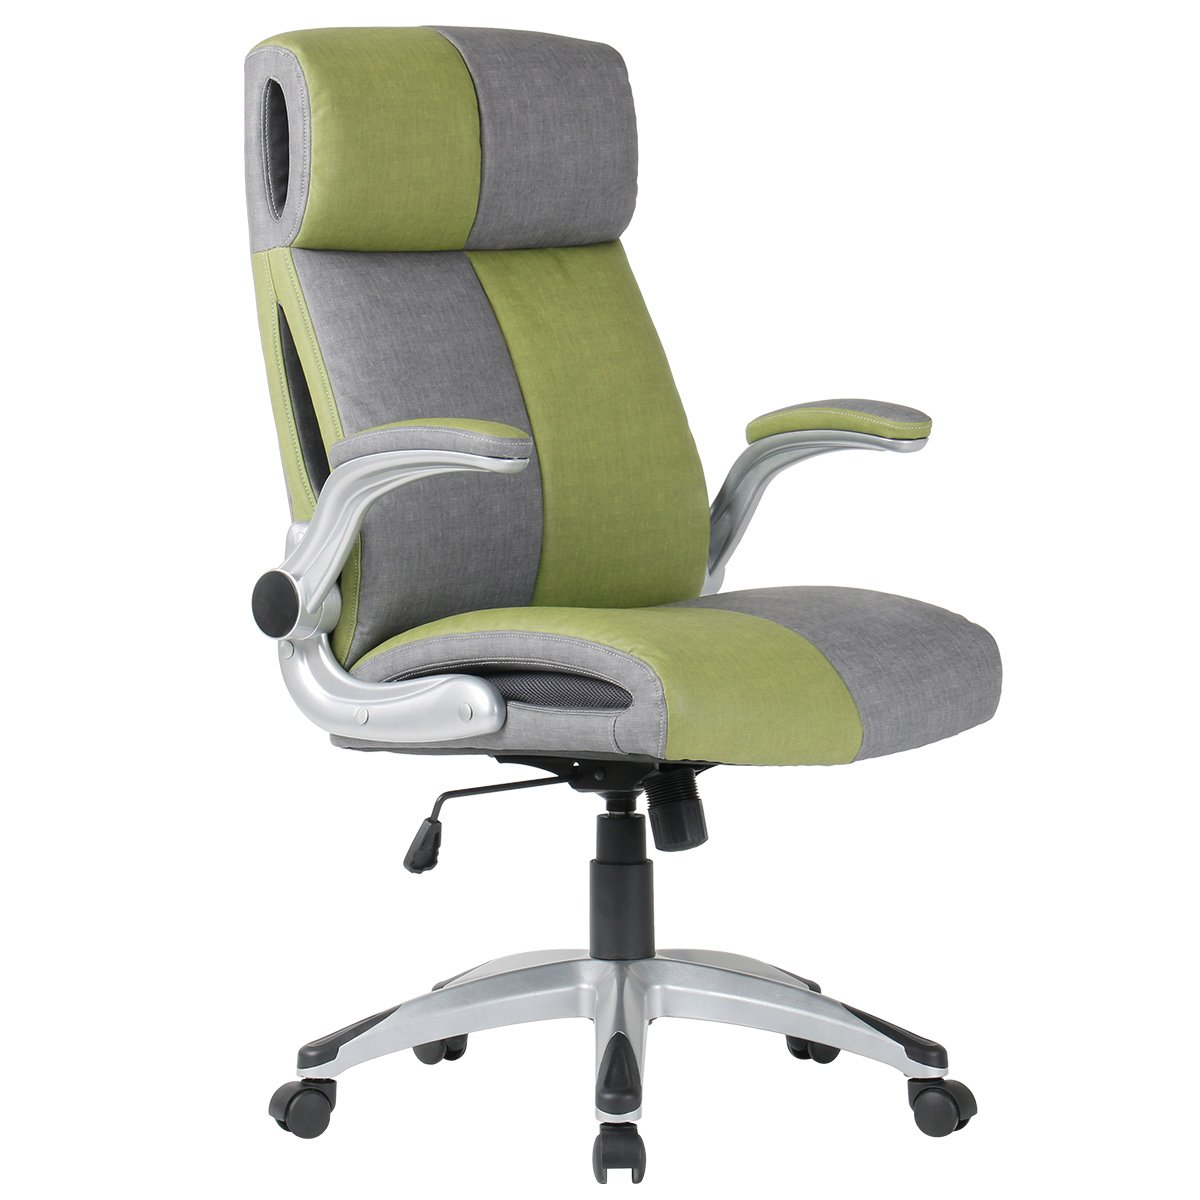 Remarkable Buy B2C2B Office Executive Office Chair High Back Swivel Ibusinesslaw Wood Chair Design Ideas Ibusinesslaworg